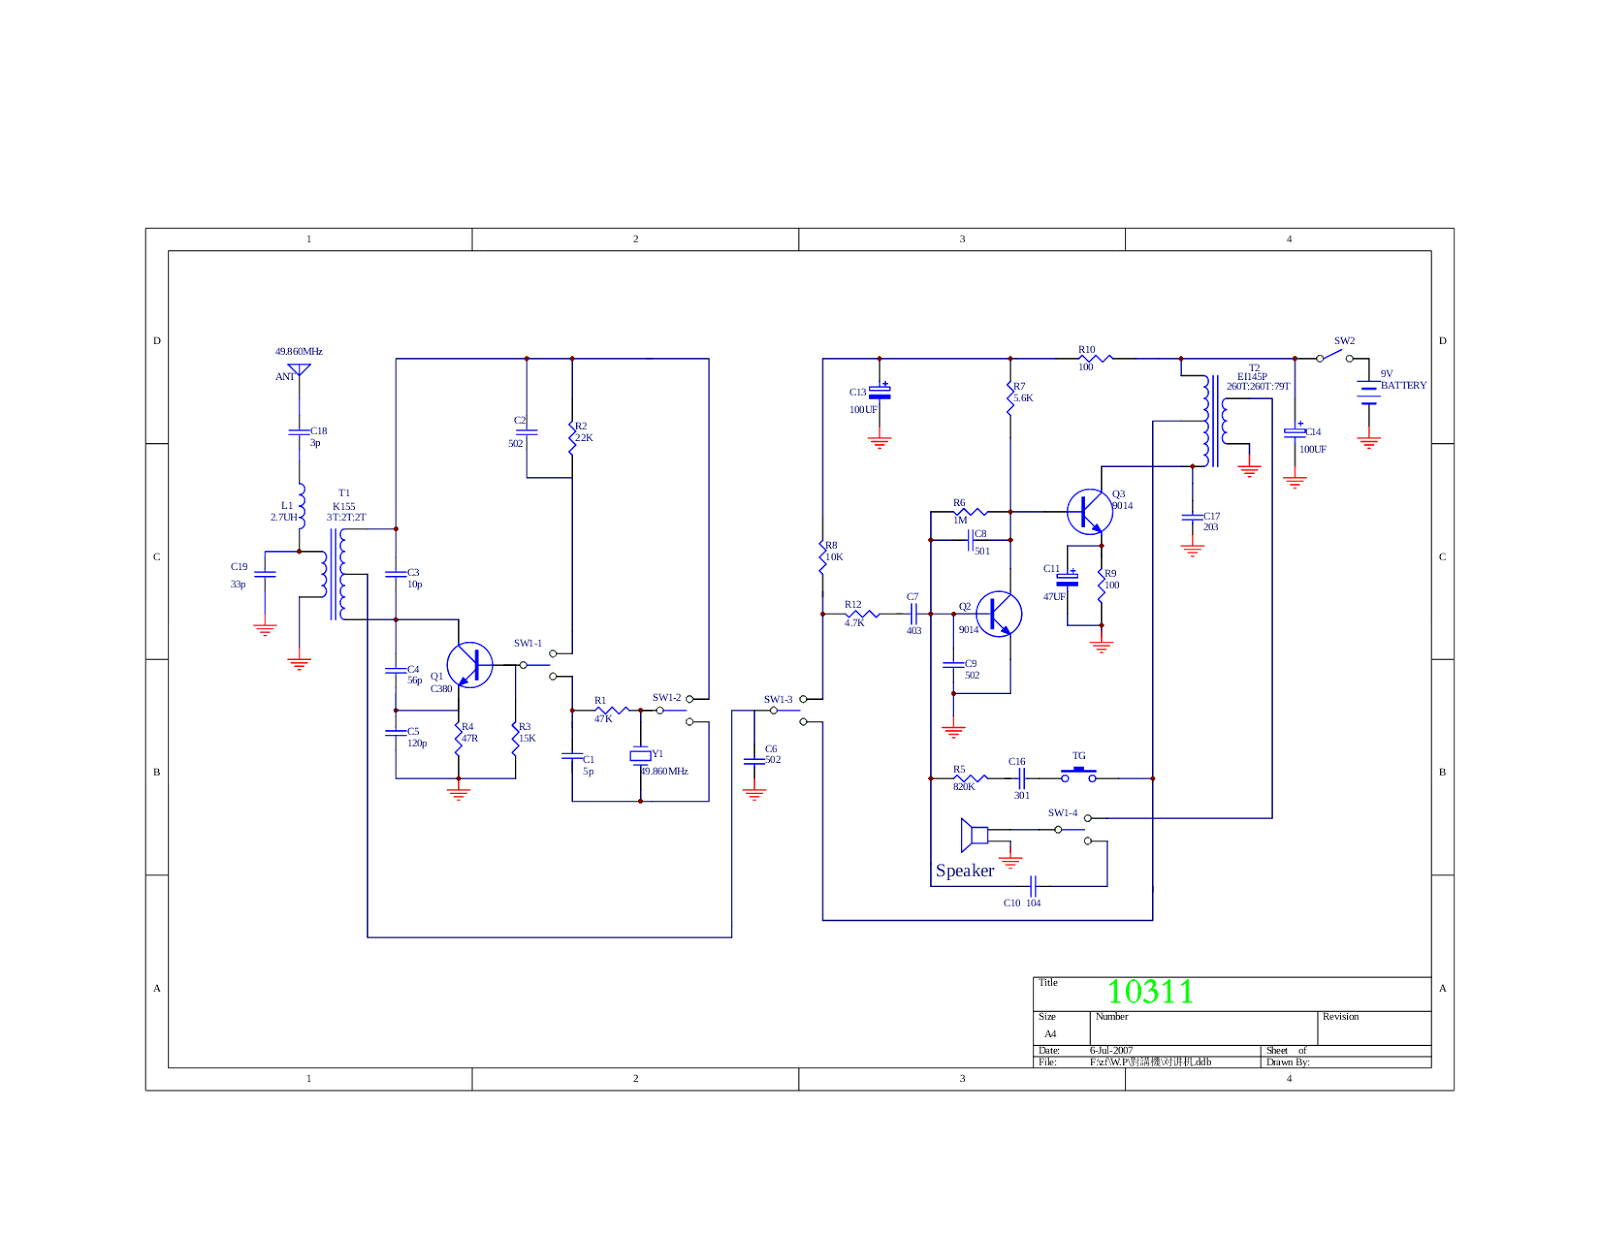 Simple walkie talkie circuit diagram easy to build transistor this simple walkie talkie circuit is very easy to build for your home made walkie talkie project asfbconference2016 Image collections